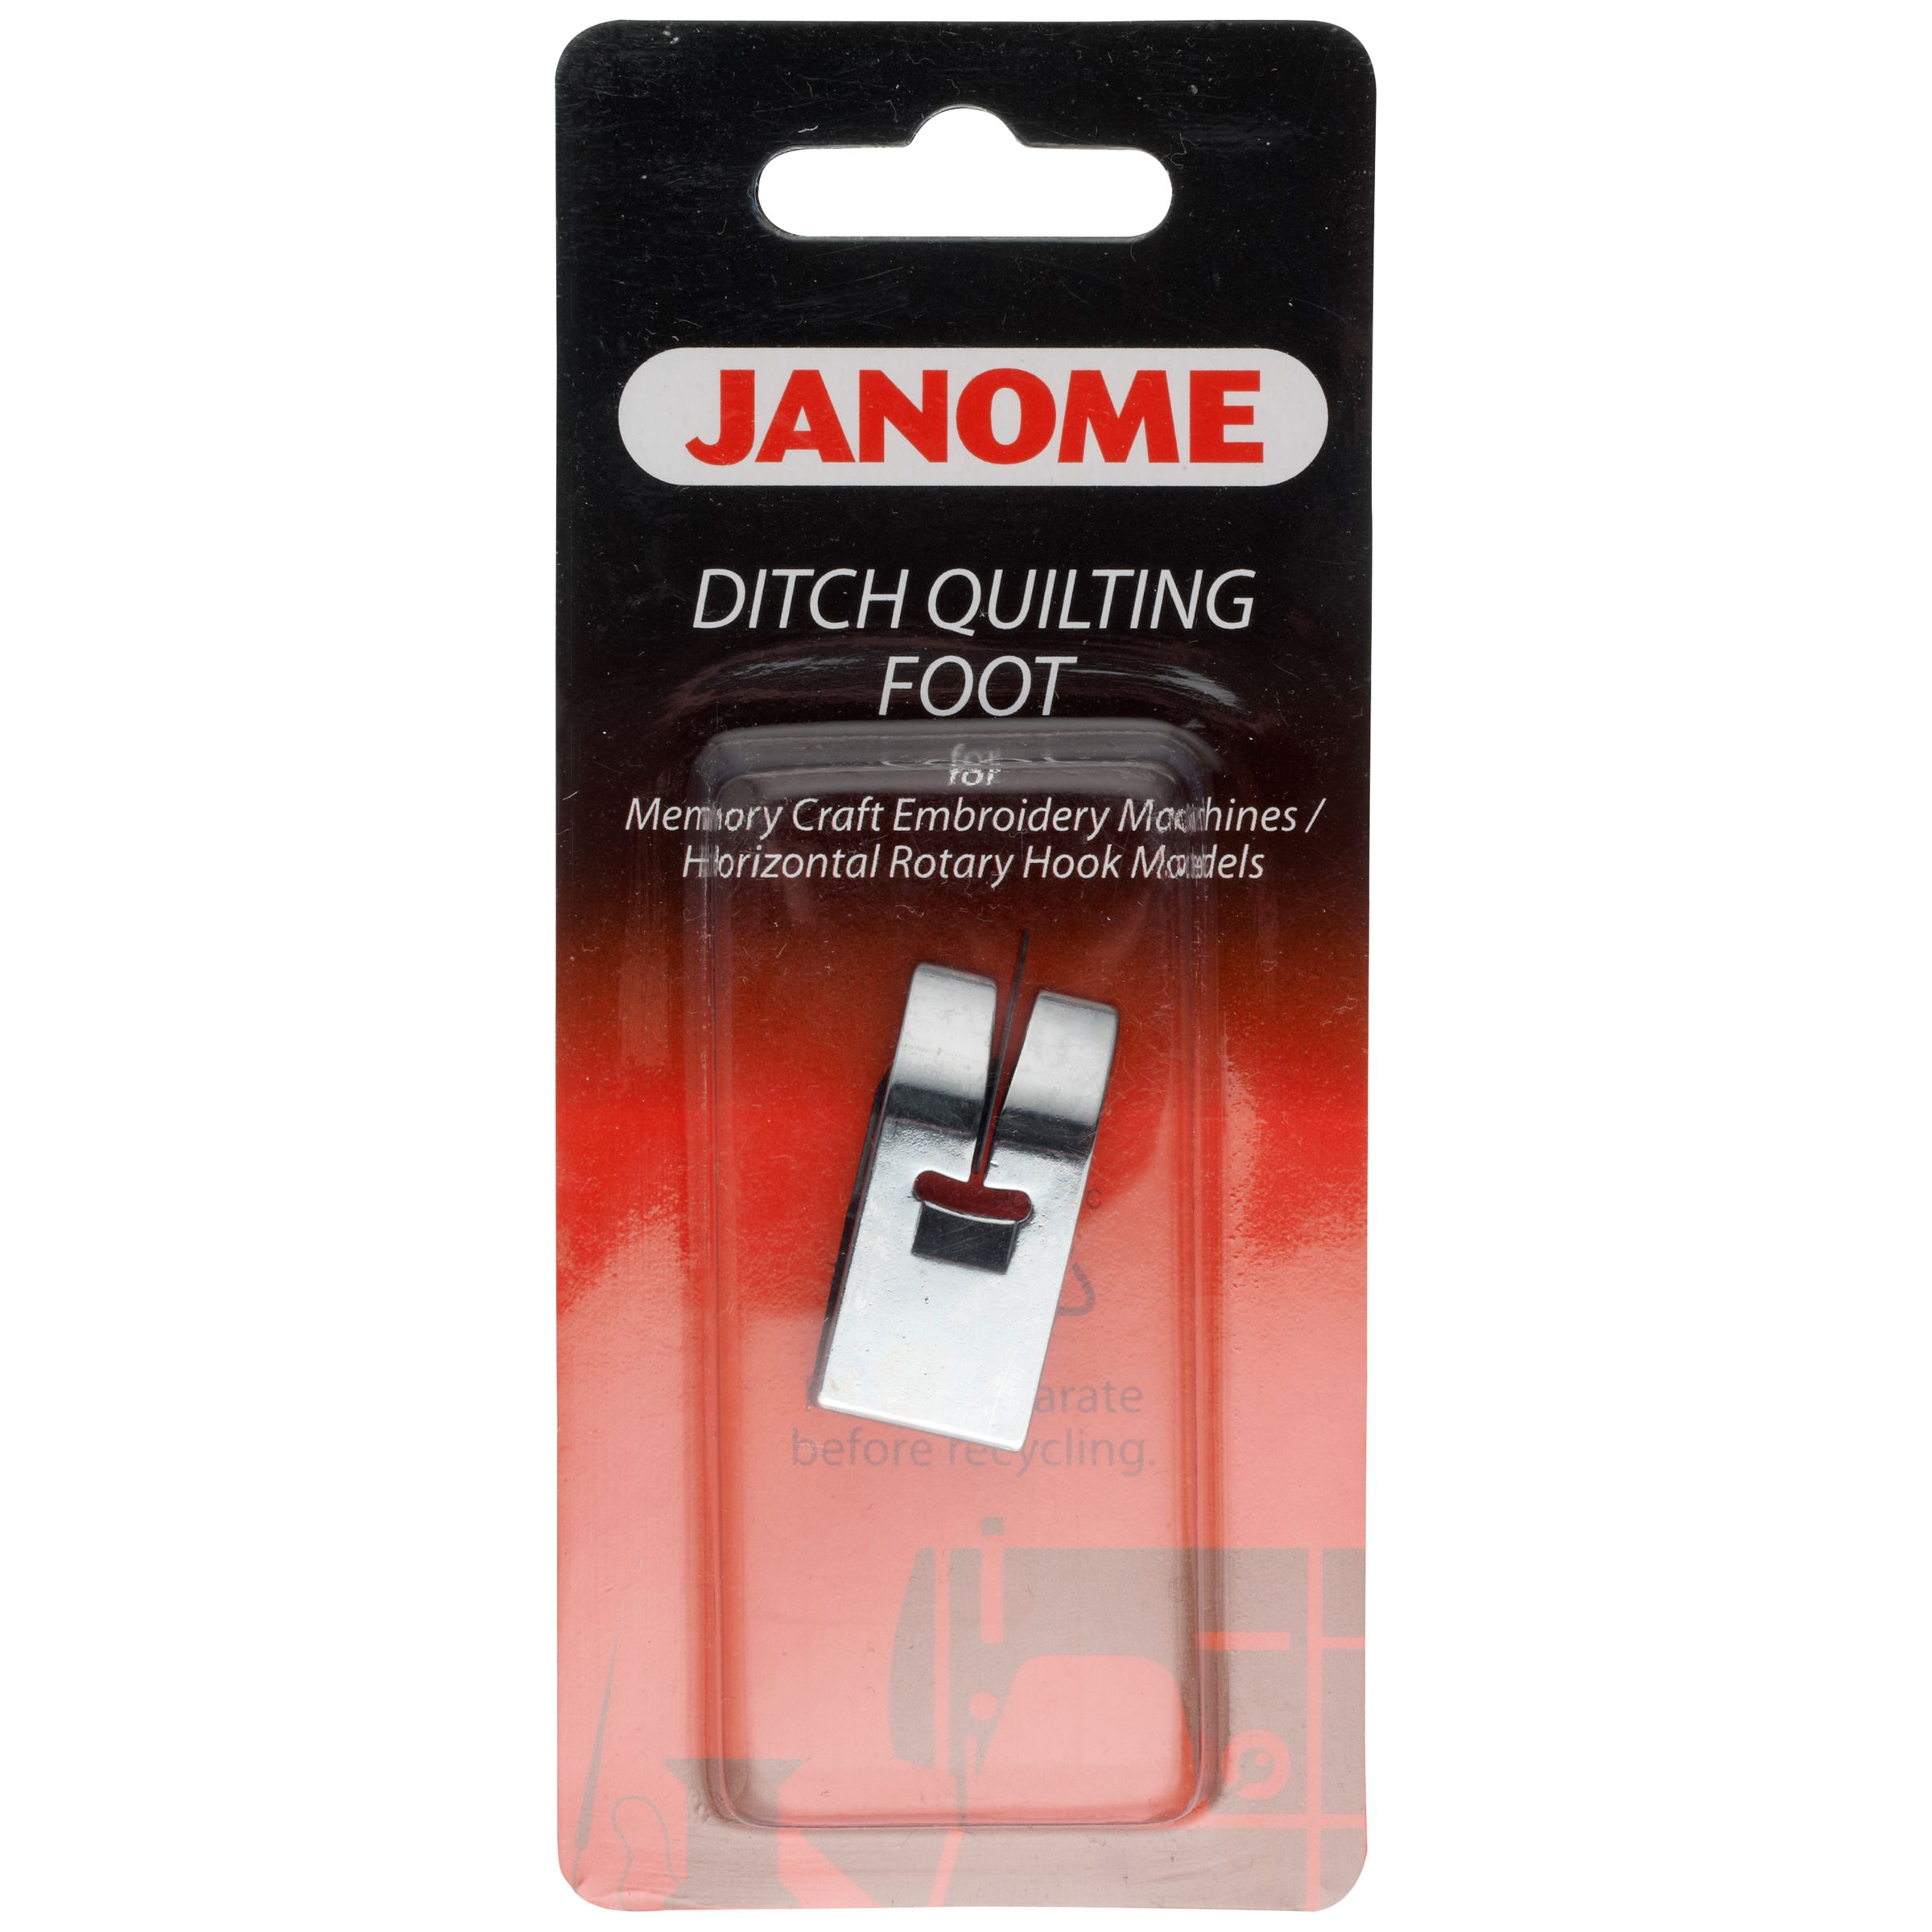 Janome Janome Ditch Quilting Foot